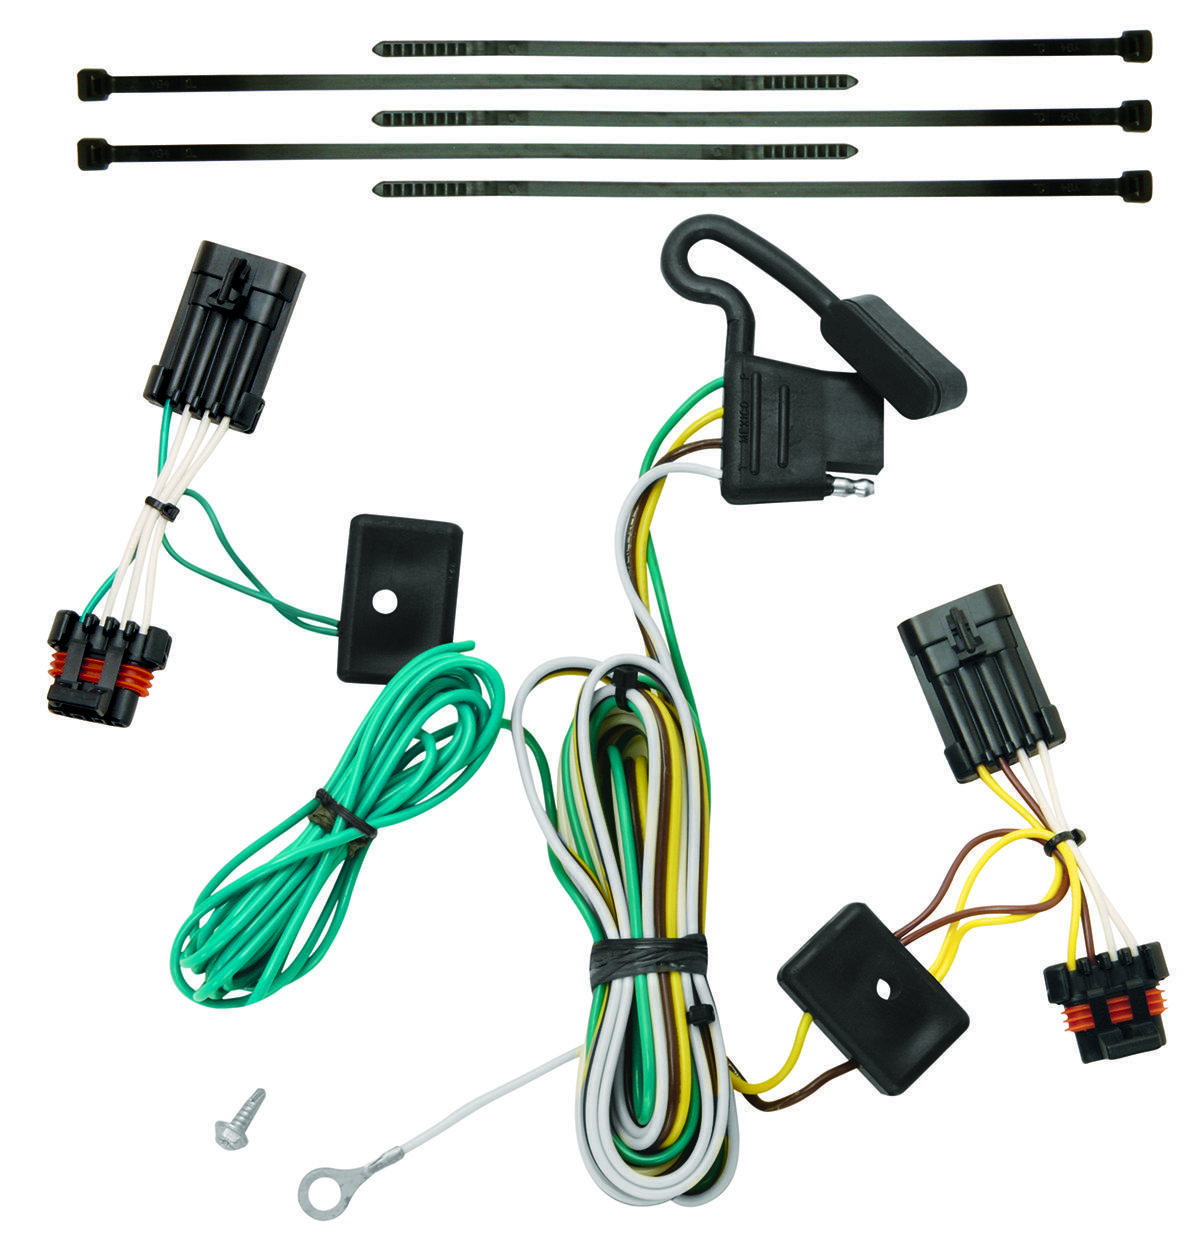 buick terraza trailer wiring harness 2005 2009 buick lacrosse trailer hitch tow and 13 similar items  2005 2009 buick lacrosse trailer hitch